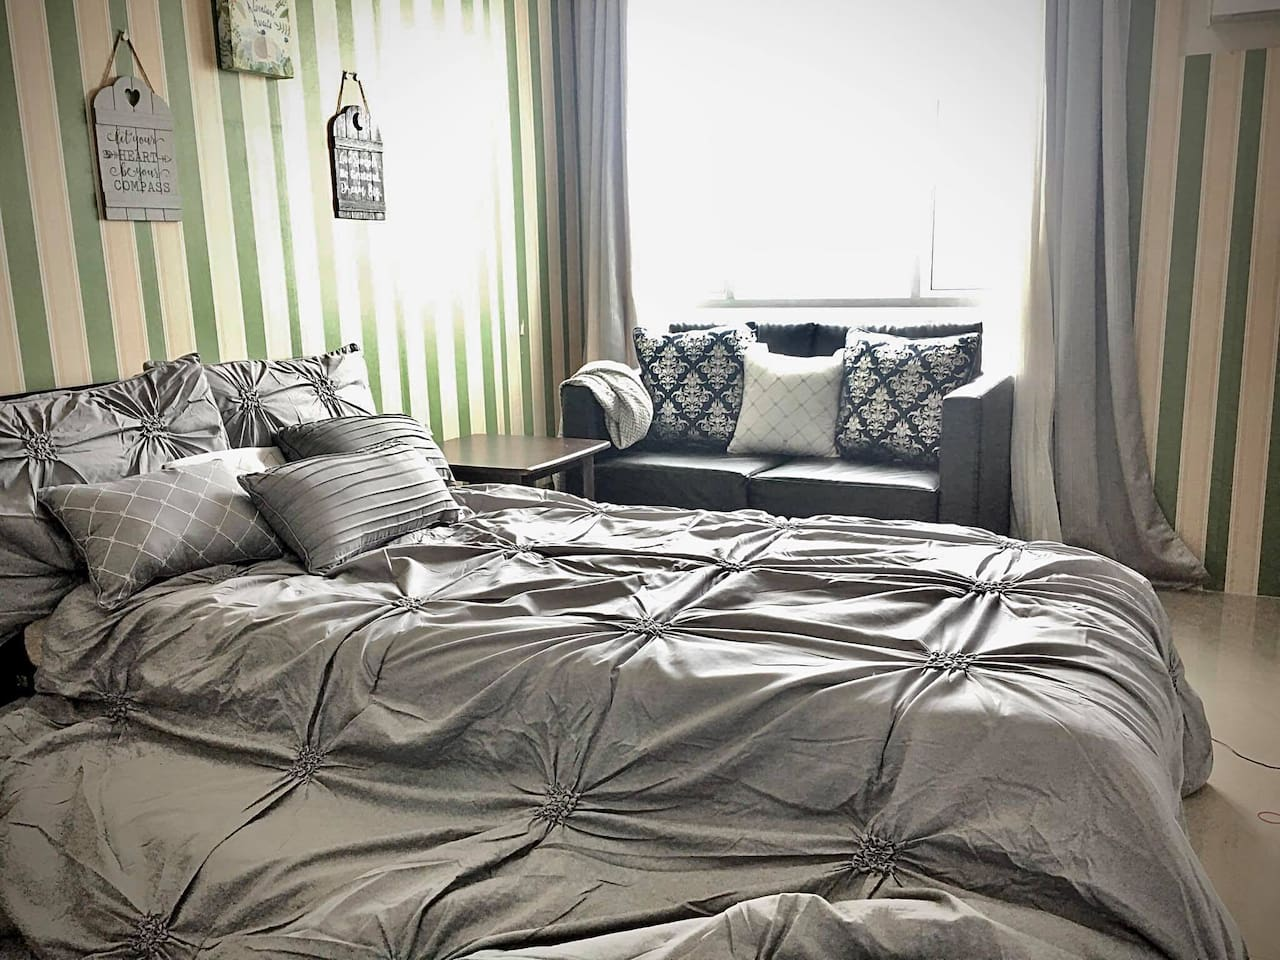 We use u.s. comfy beddings. Rest and relax luxuriously...